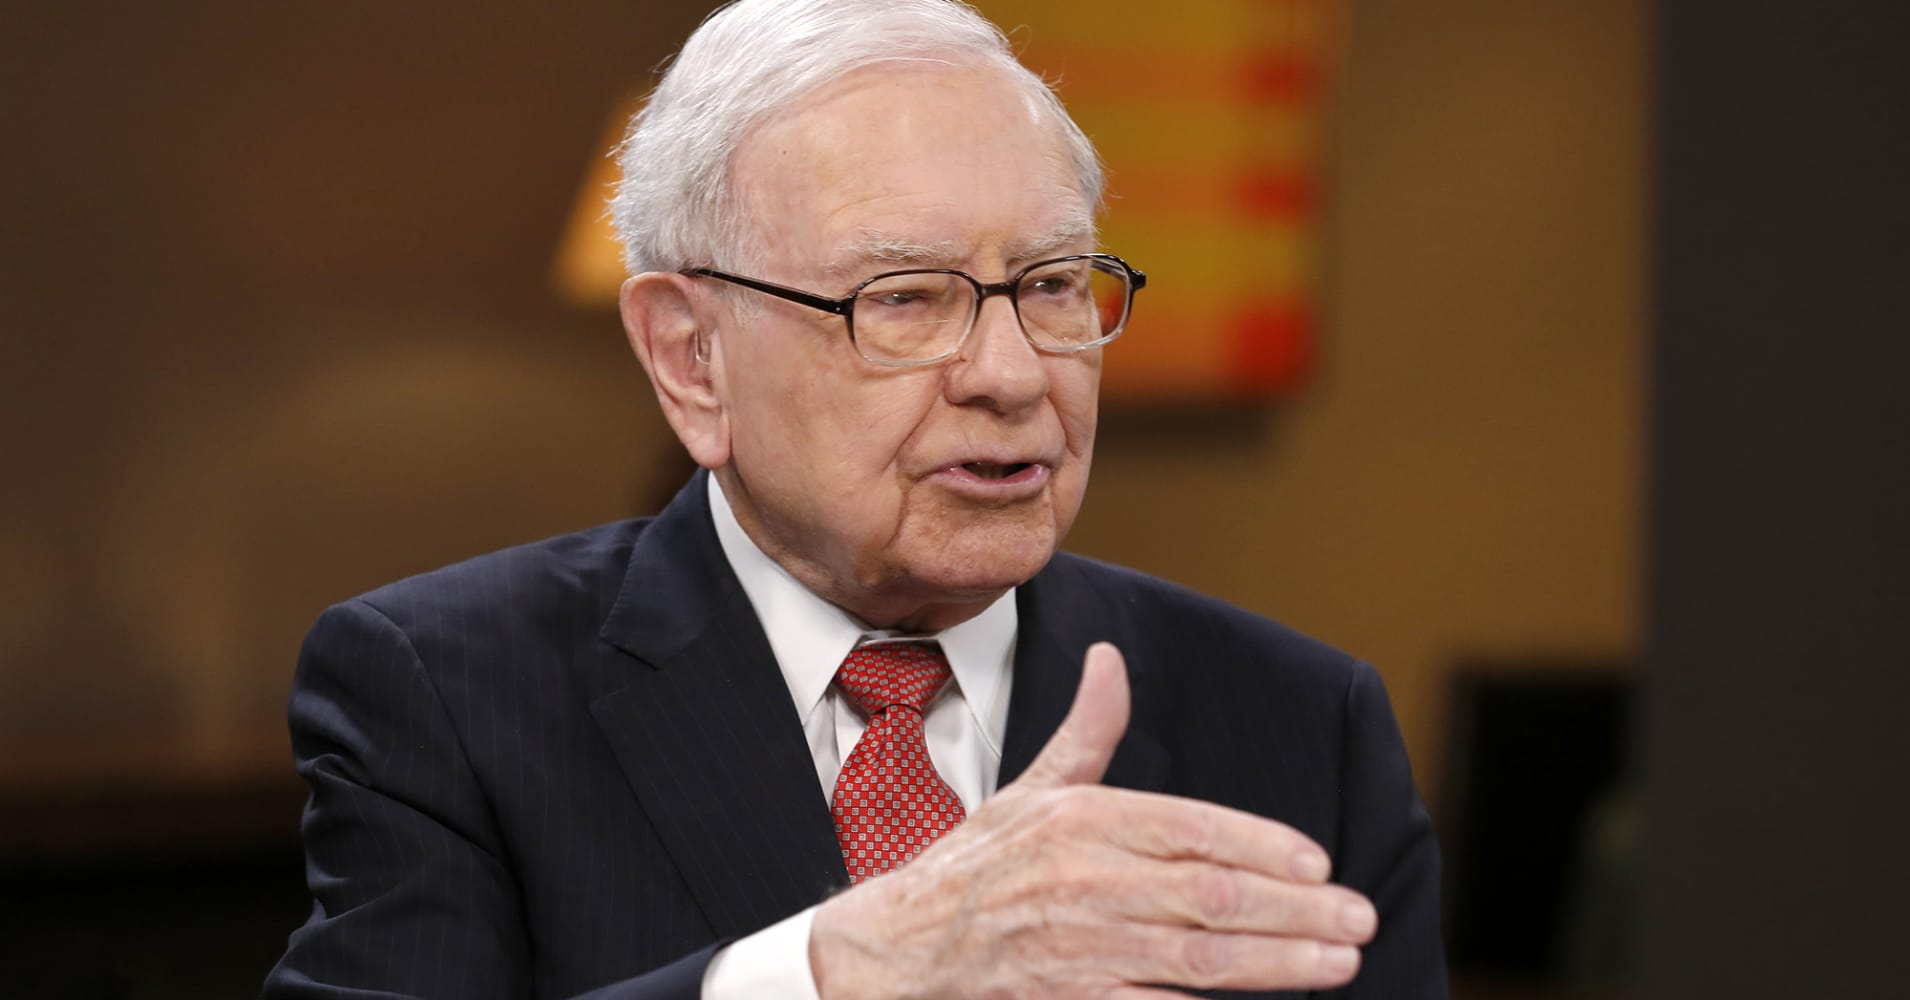 Warren Buffett says Berkshire Hathaway has sold completely from IBM - CNBC